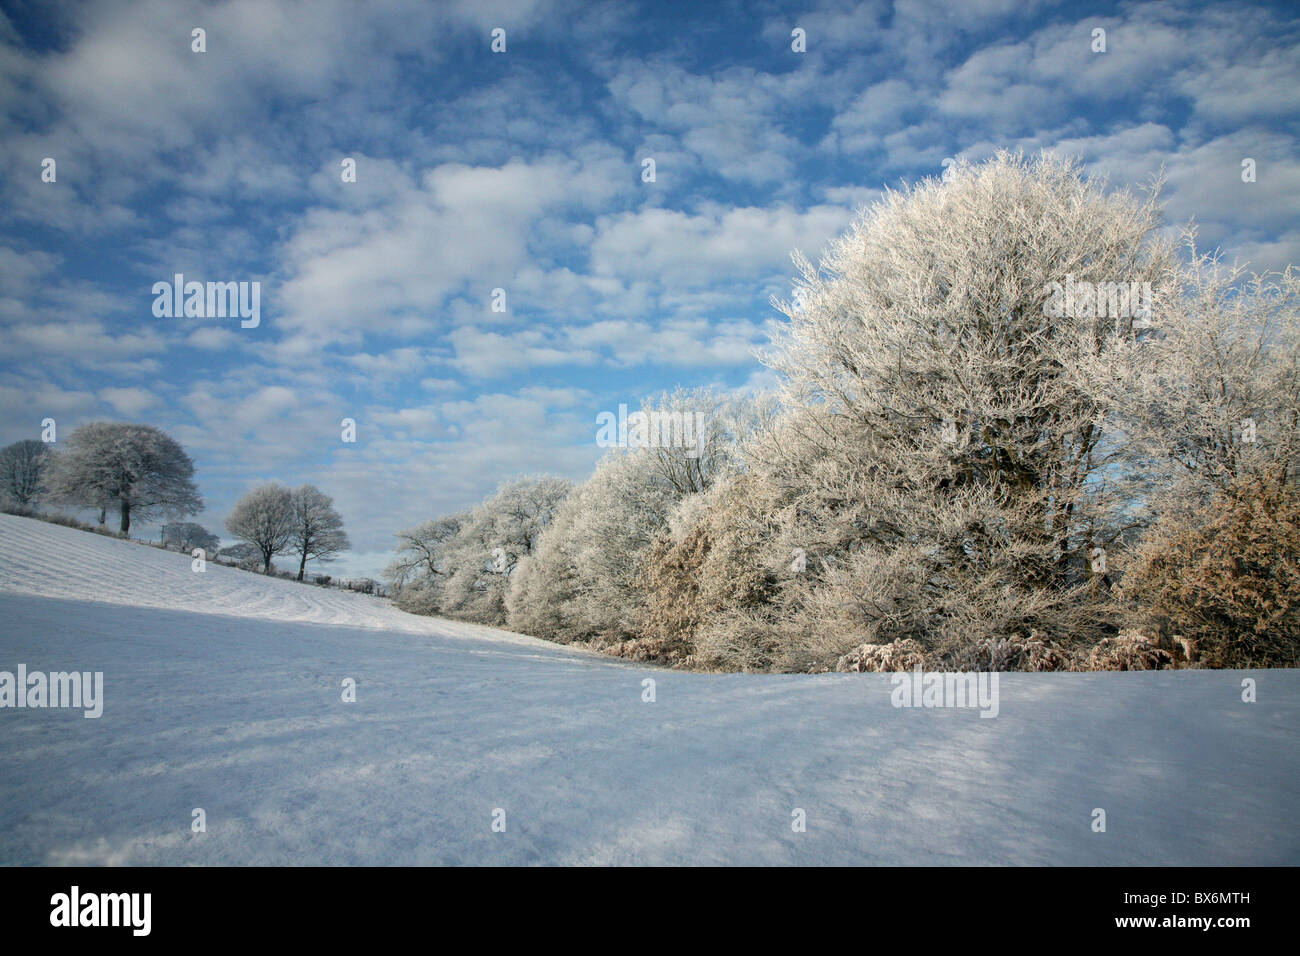 trees-and-bushes-covered-in-hoar-frost-o